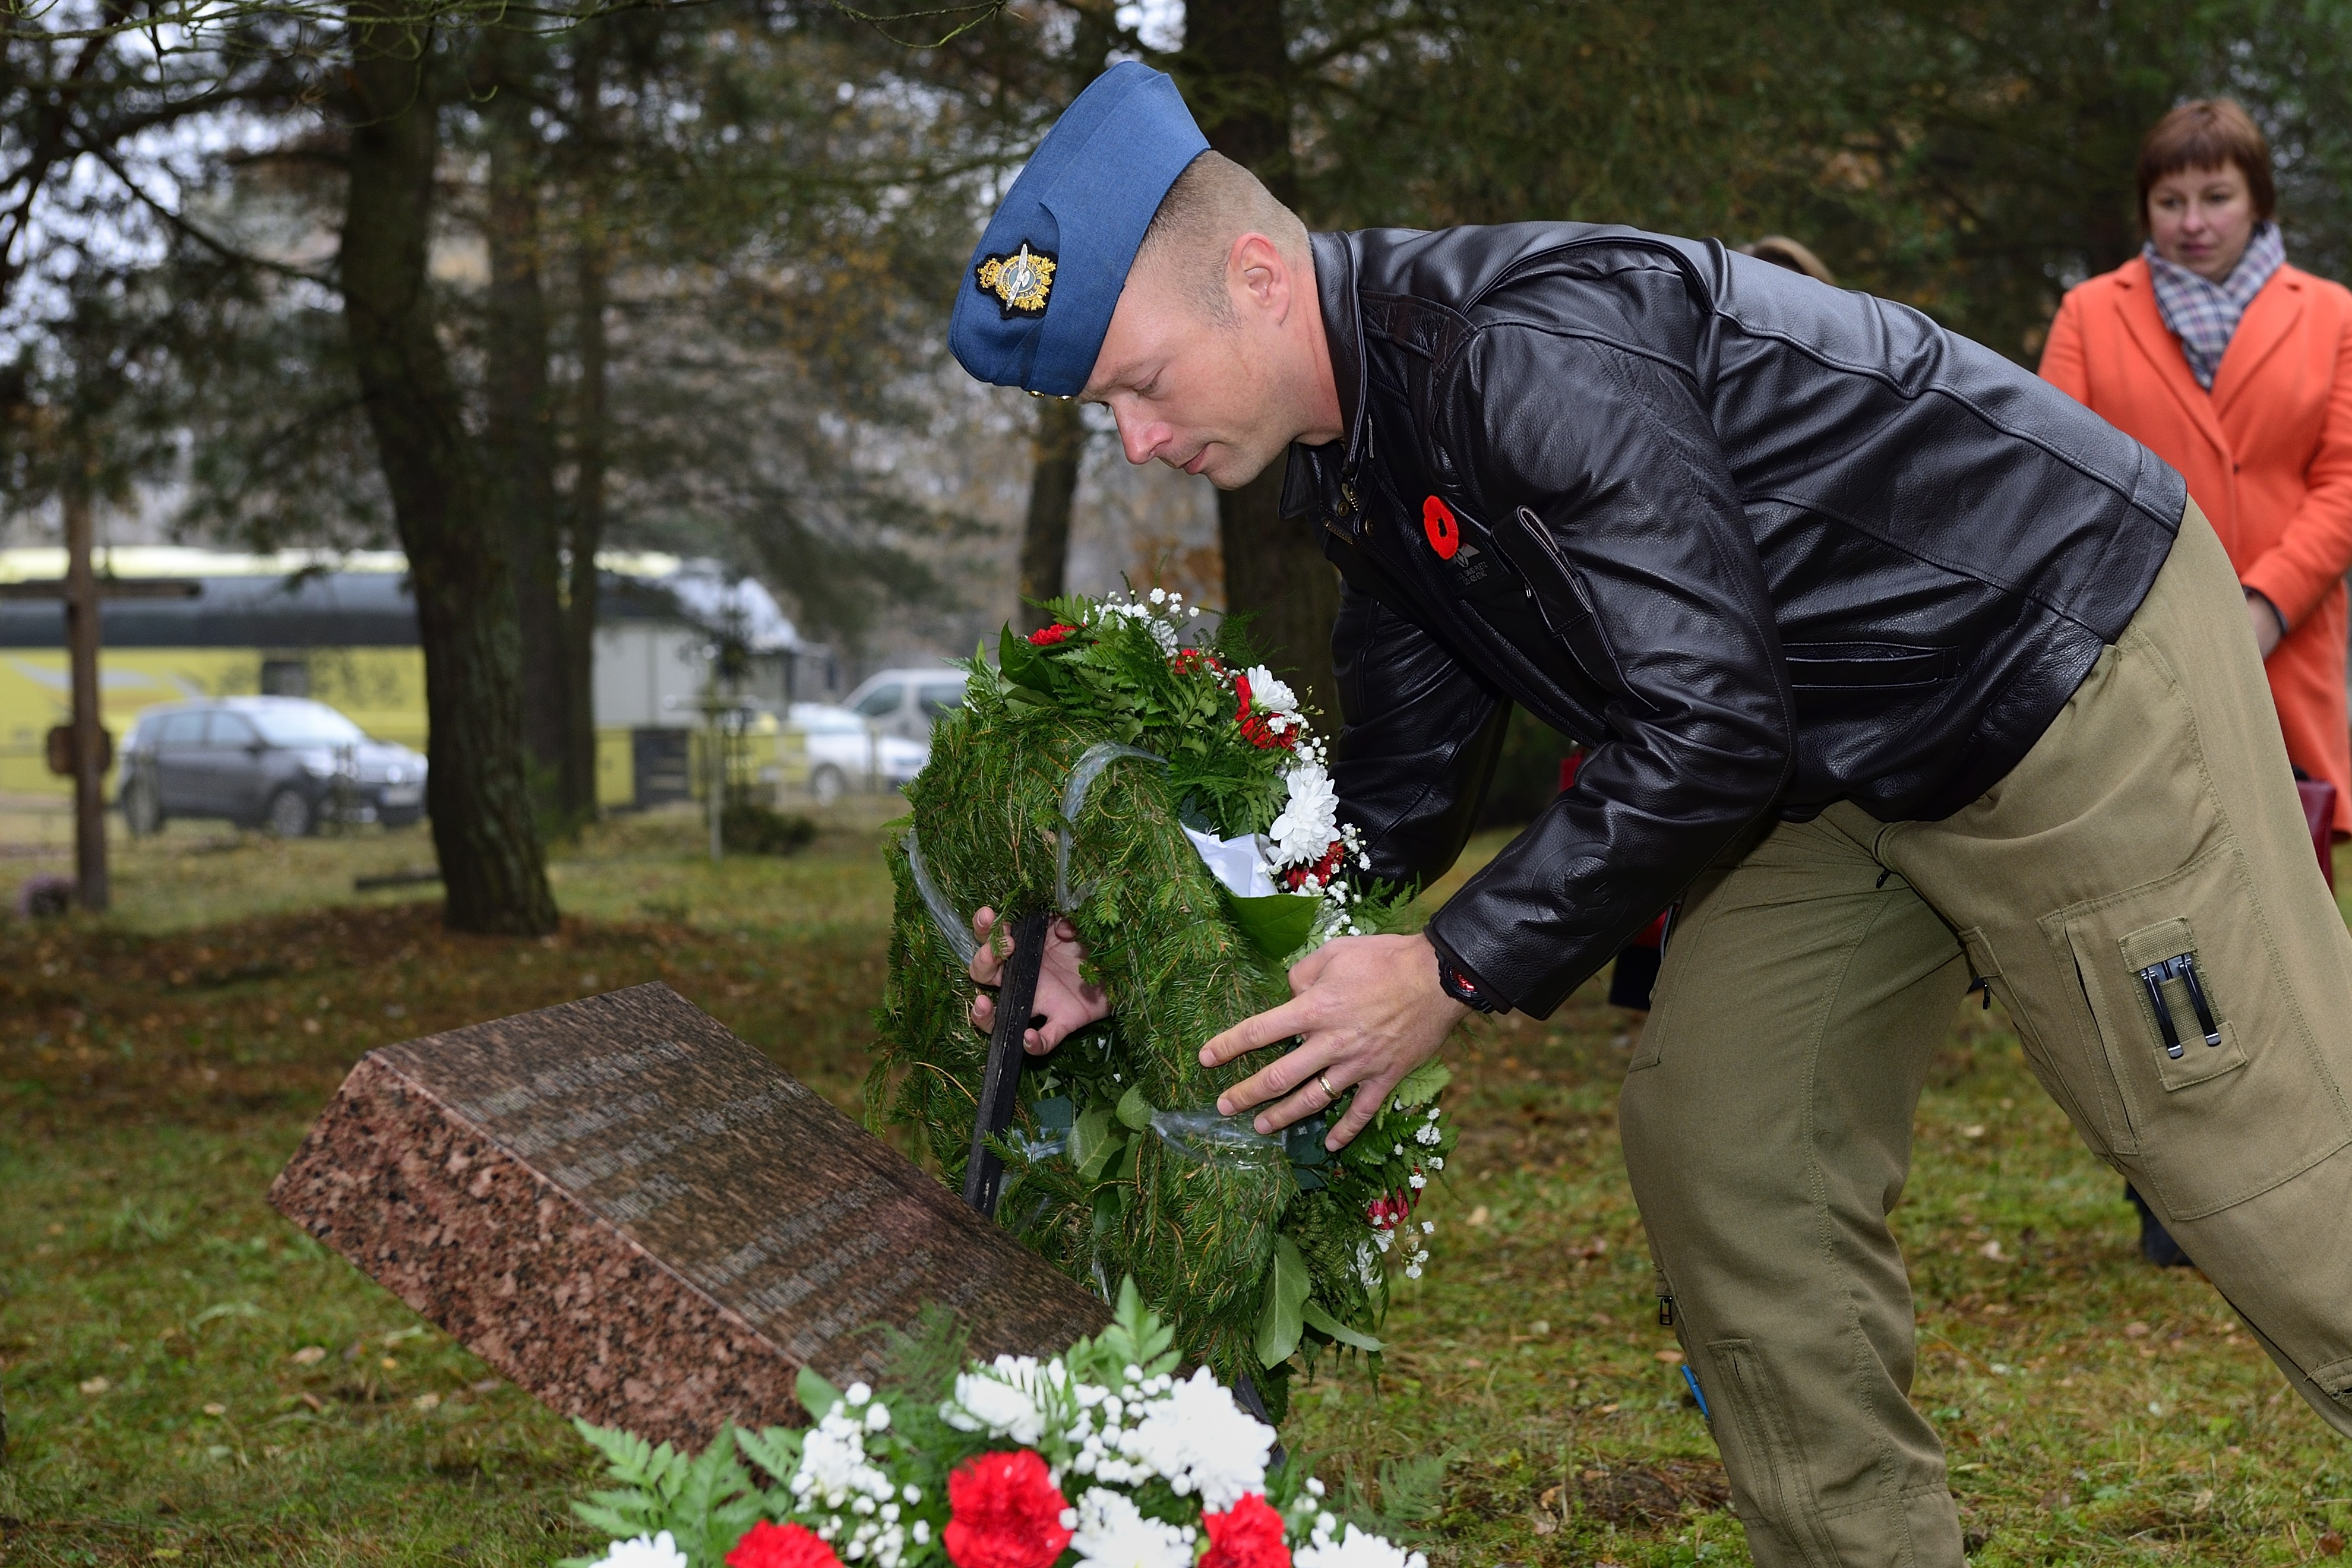 Lieutenant-Colonel David Pletz, the commander of Air Task Force-Lithuania, lays a wreath at a memorial commemorating Warrant Officer Class 1 Keith Oliver Perry, a member of the Royal Canadian Air Force who died at a nearby a prisoner of war camp in 1943. PHOTO: Air Task Force Lithuania